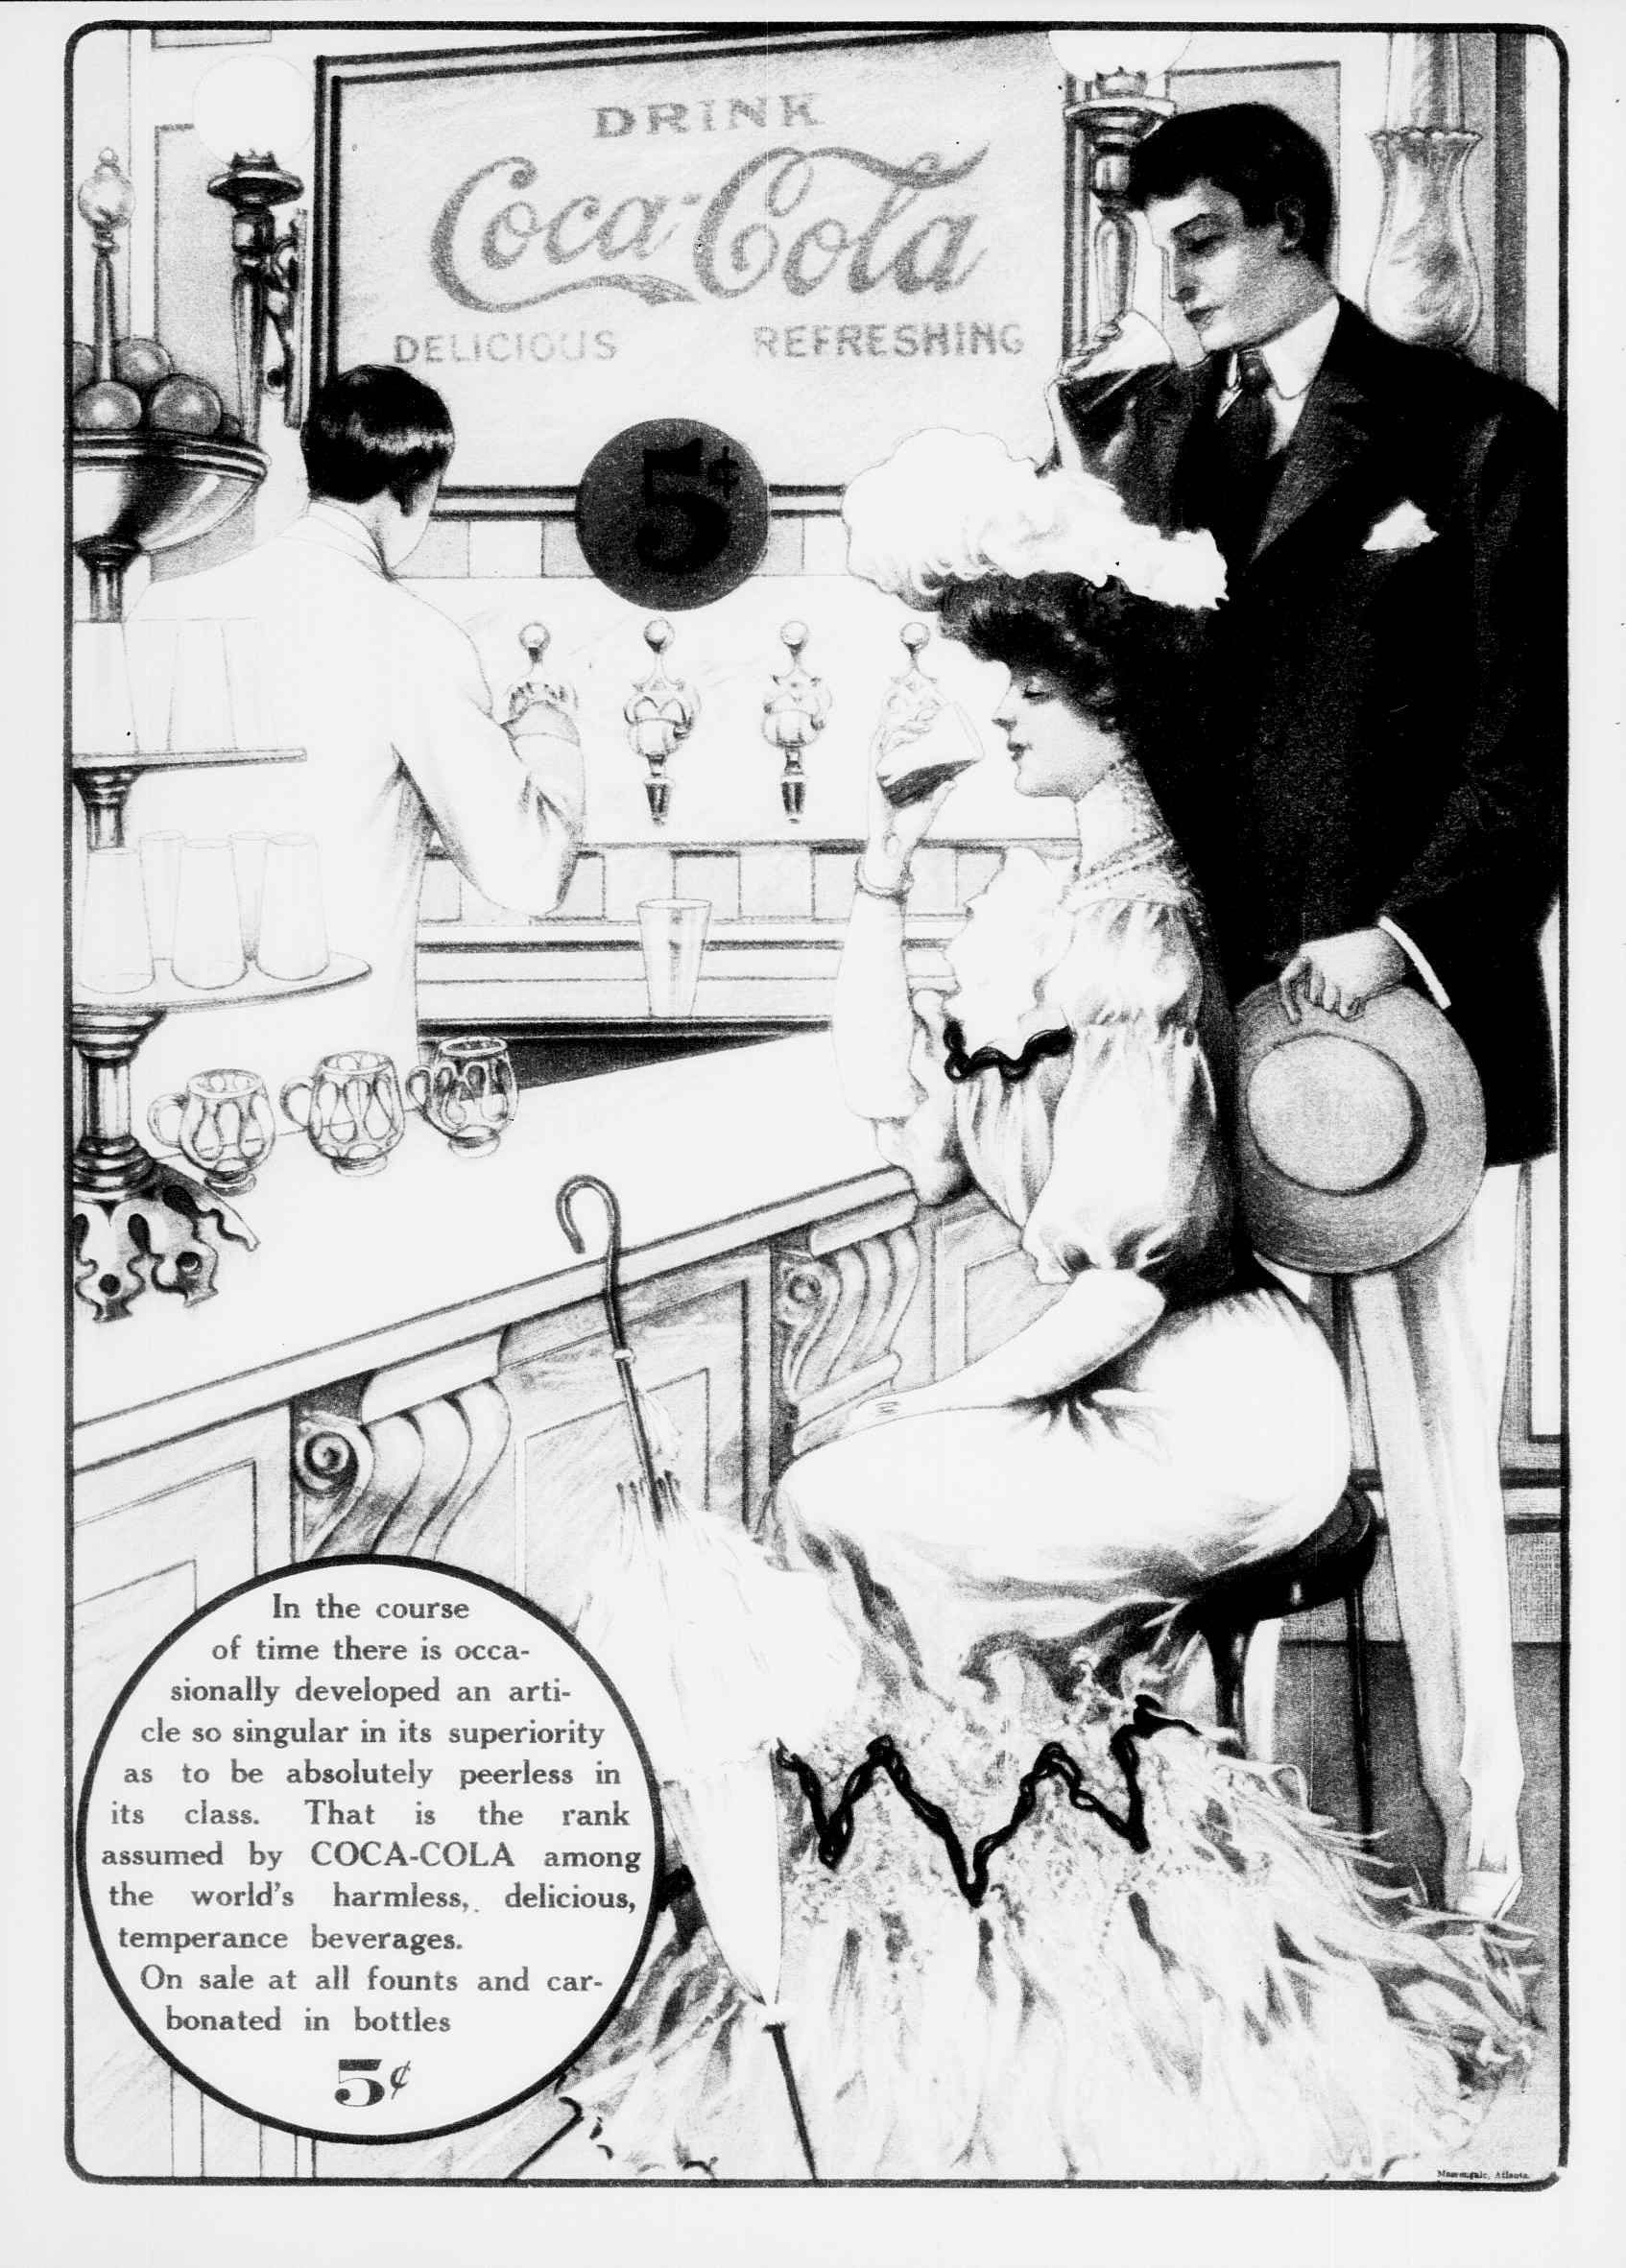 1906 Coca-Cola advertisement